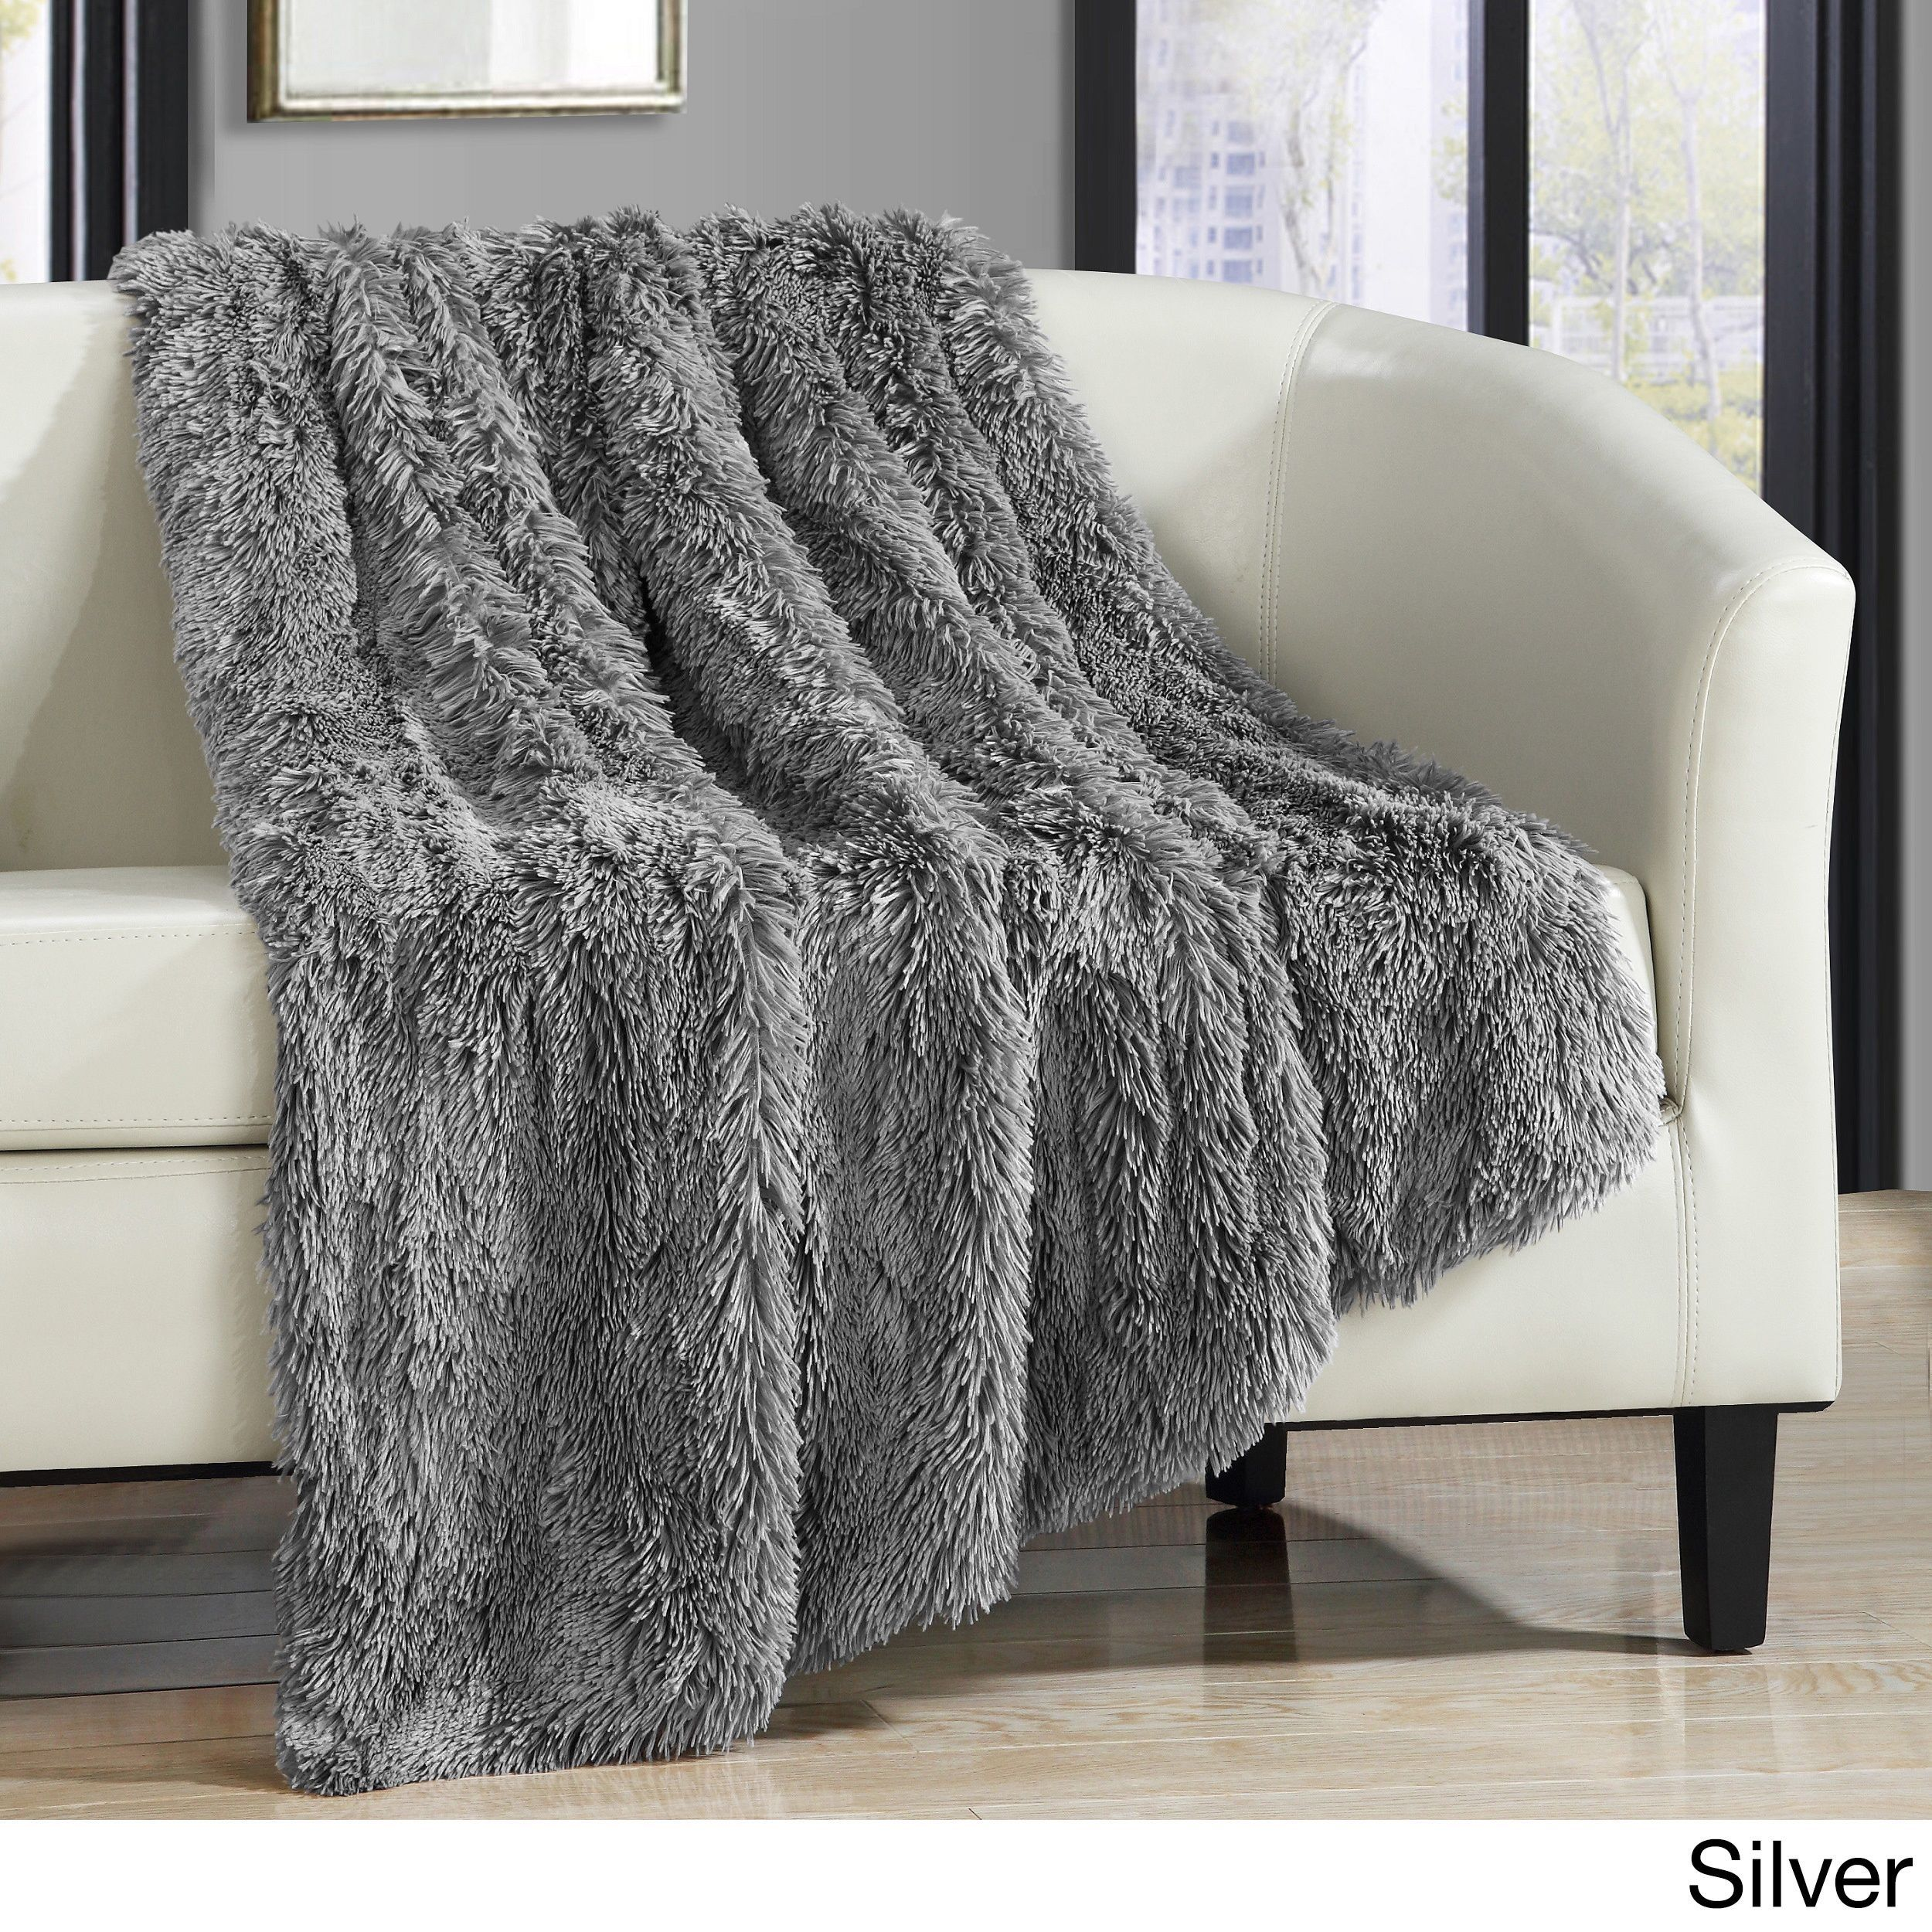 Overstock Com Online Shopping Bedding Furniture Electronics Jewelry Clothing More Plush Throw Blankets Decorative Throws Blanket Faux Fur Throw Blanket